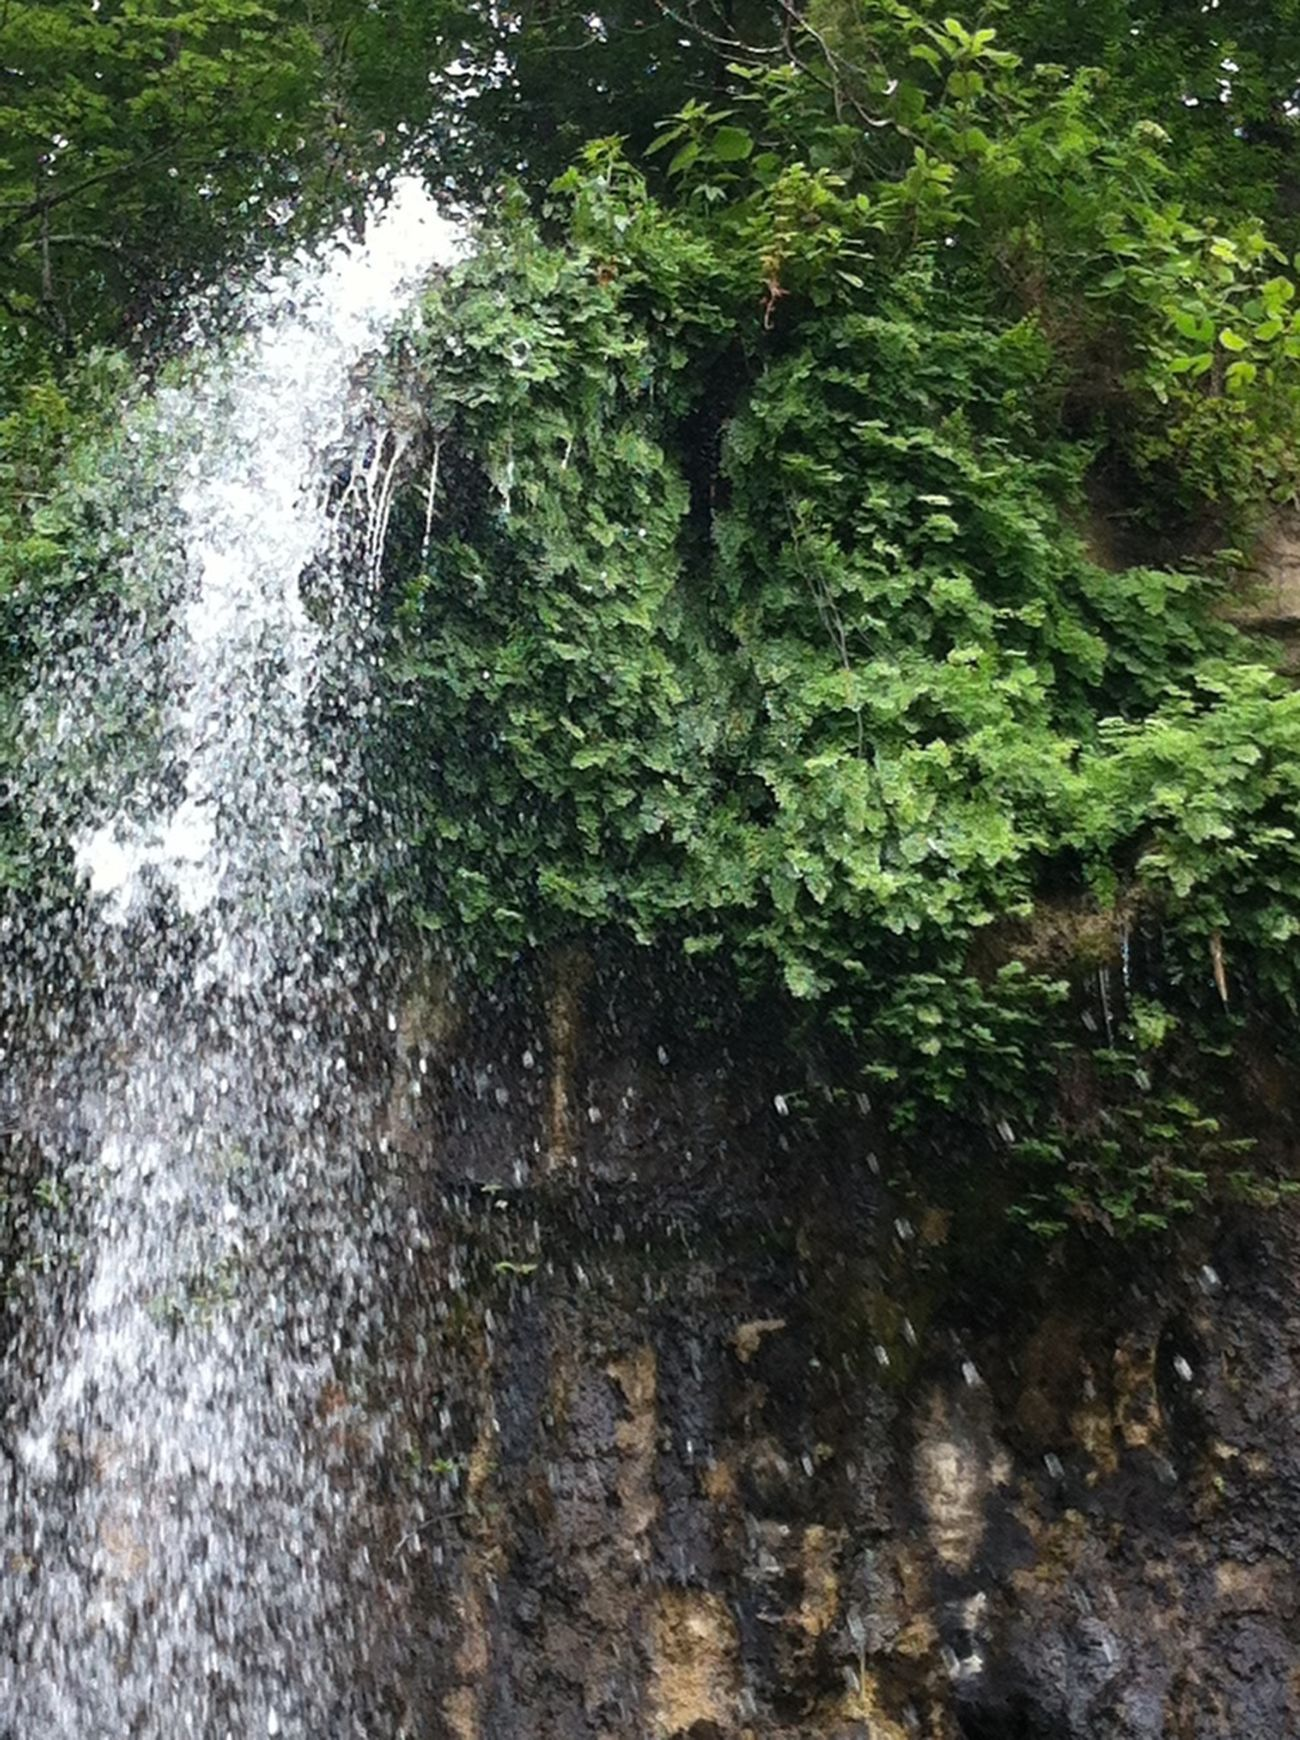 So much rain = lovely and unexpected waterfalls!